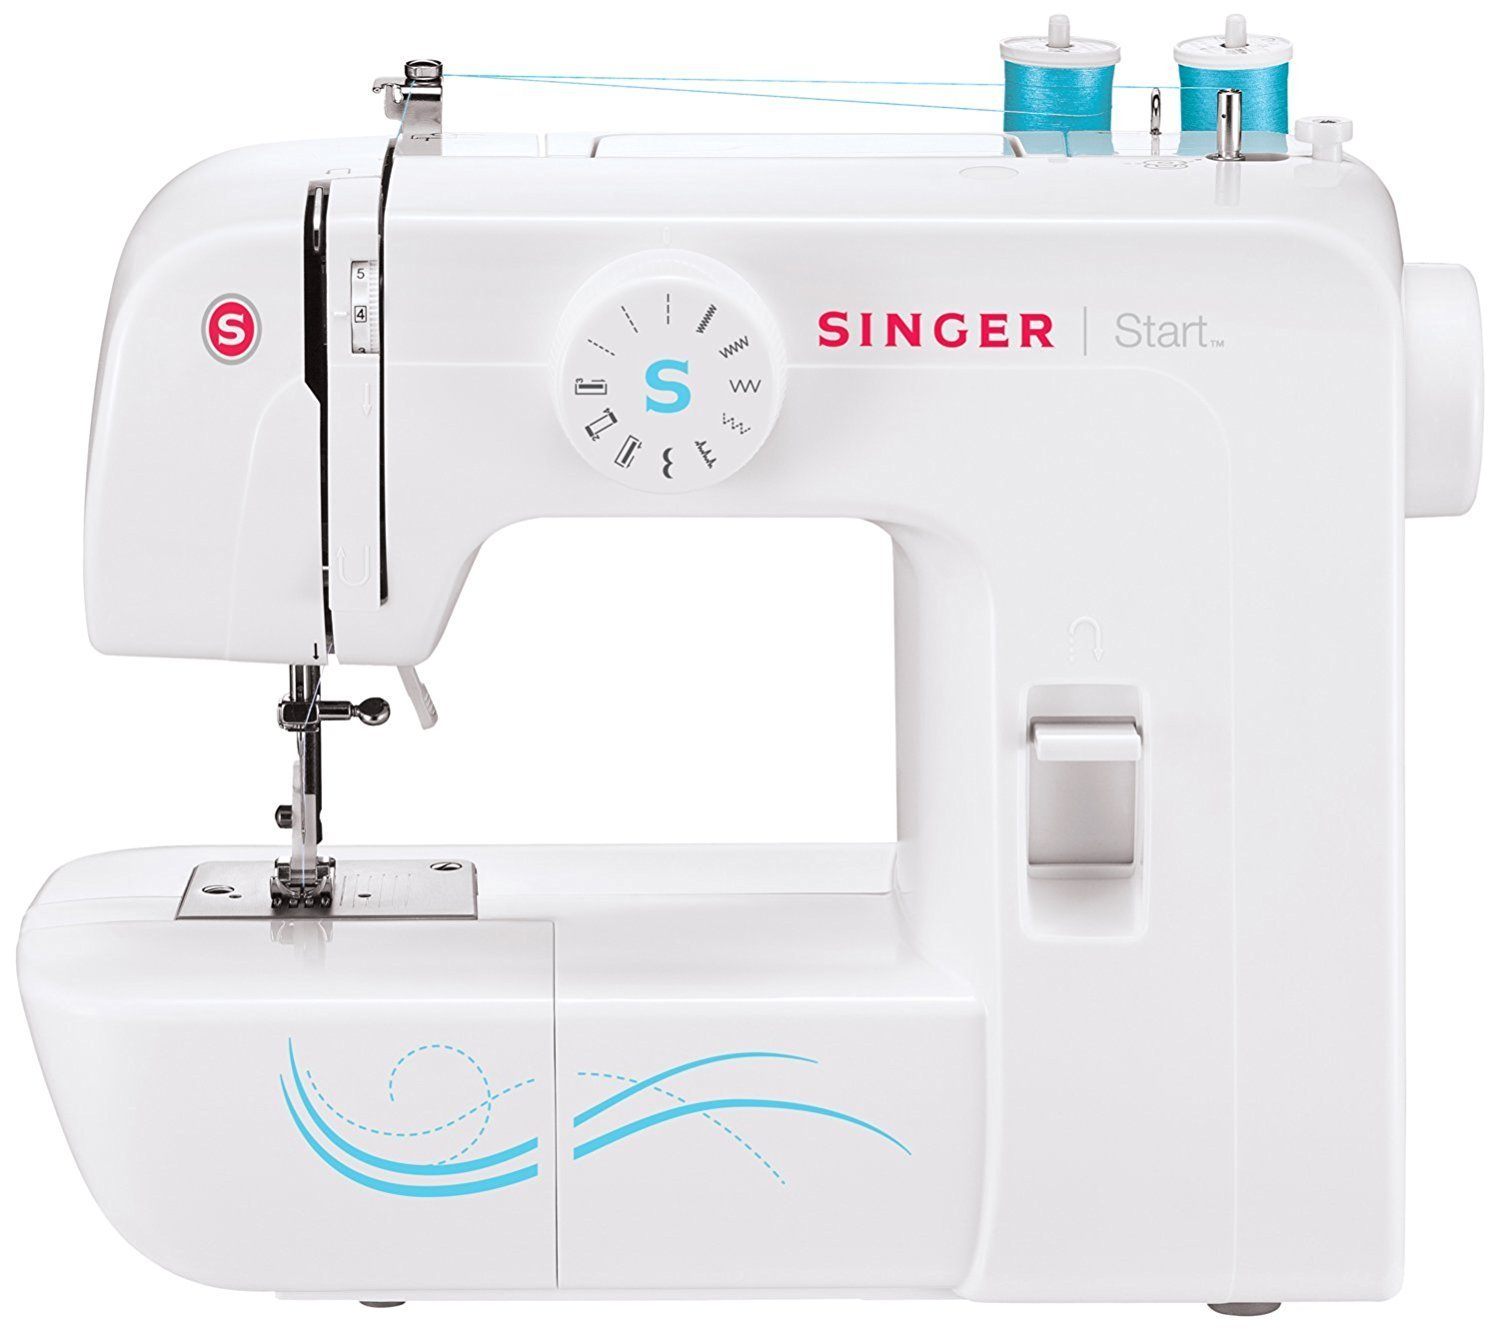 Singer Sewing and Embroidery Machine: Always on the go? This portable pick is for you!